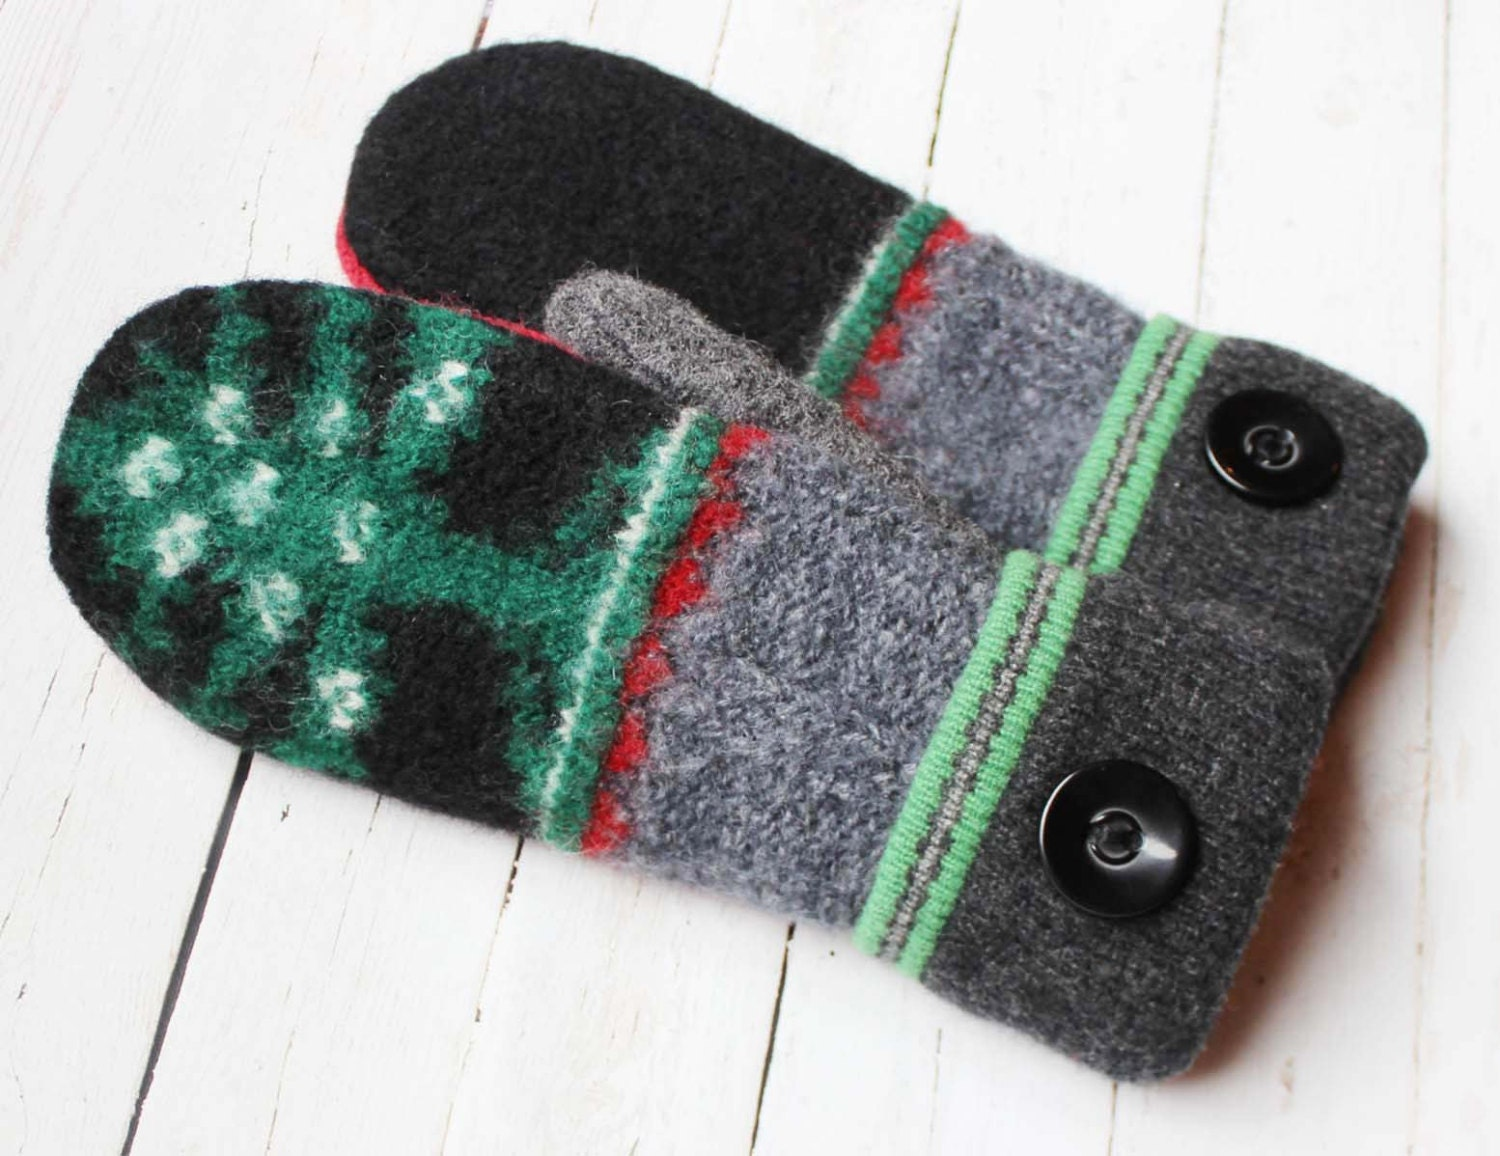 how to start your own bussines on knit dog sweater